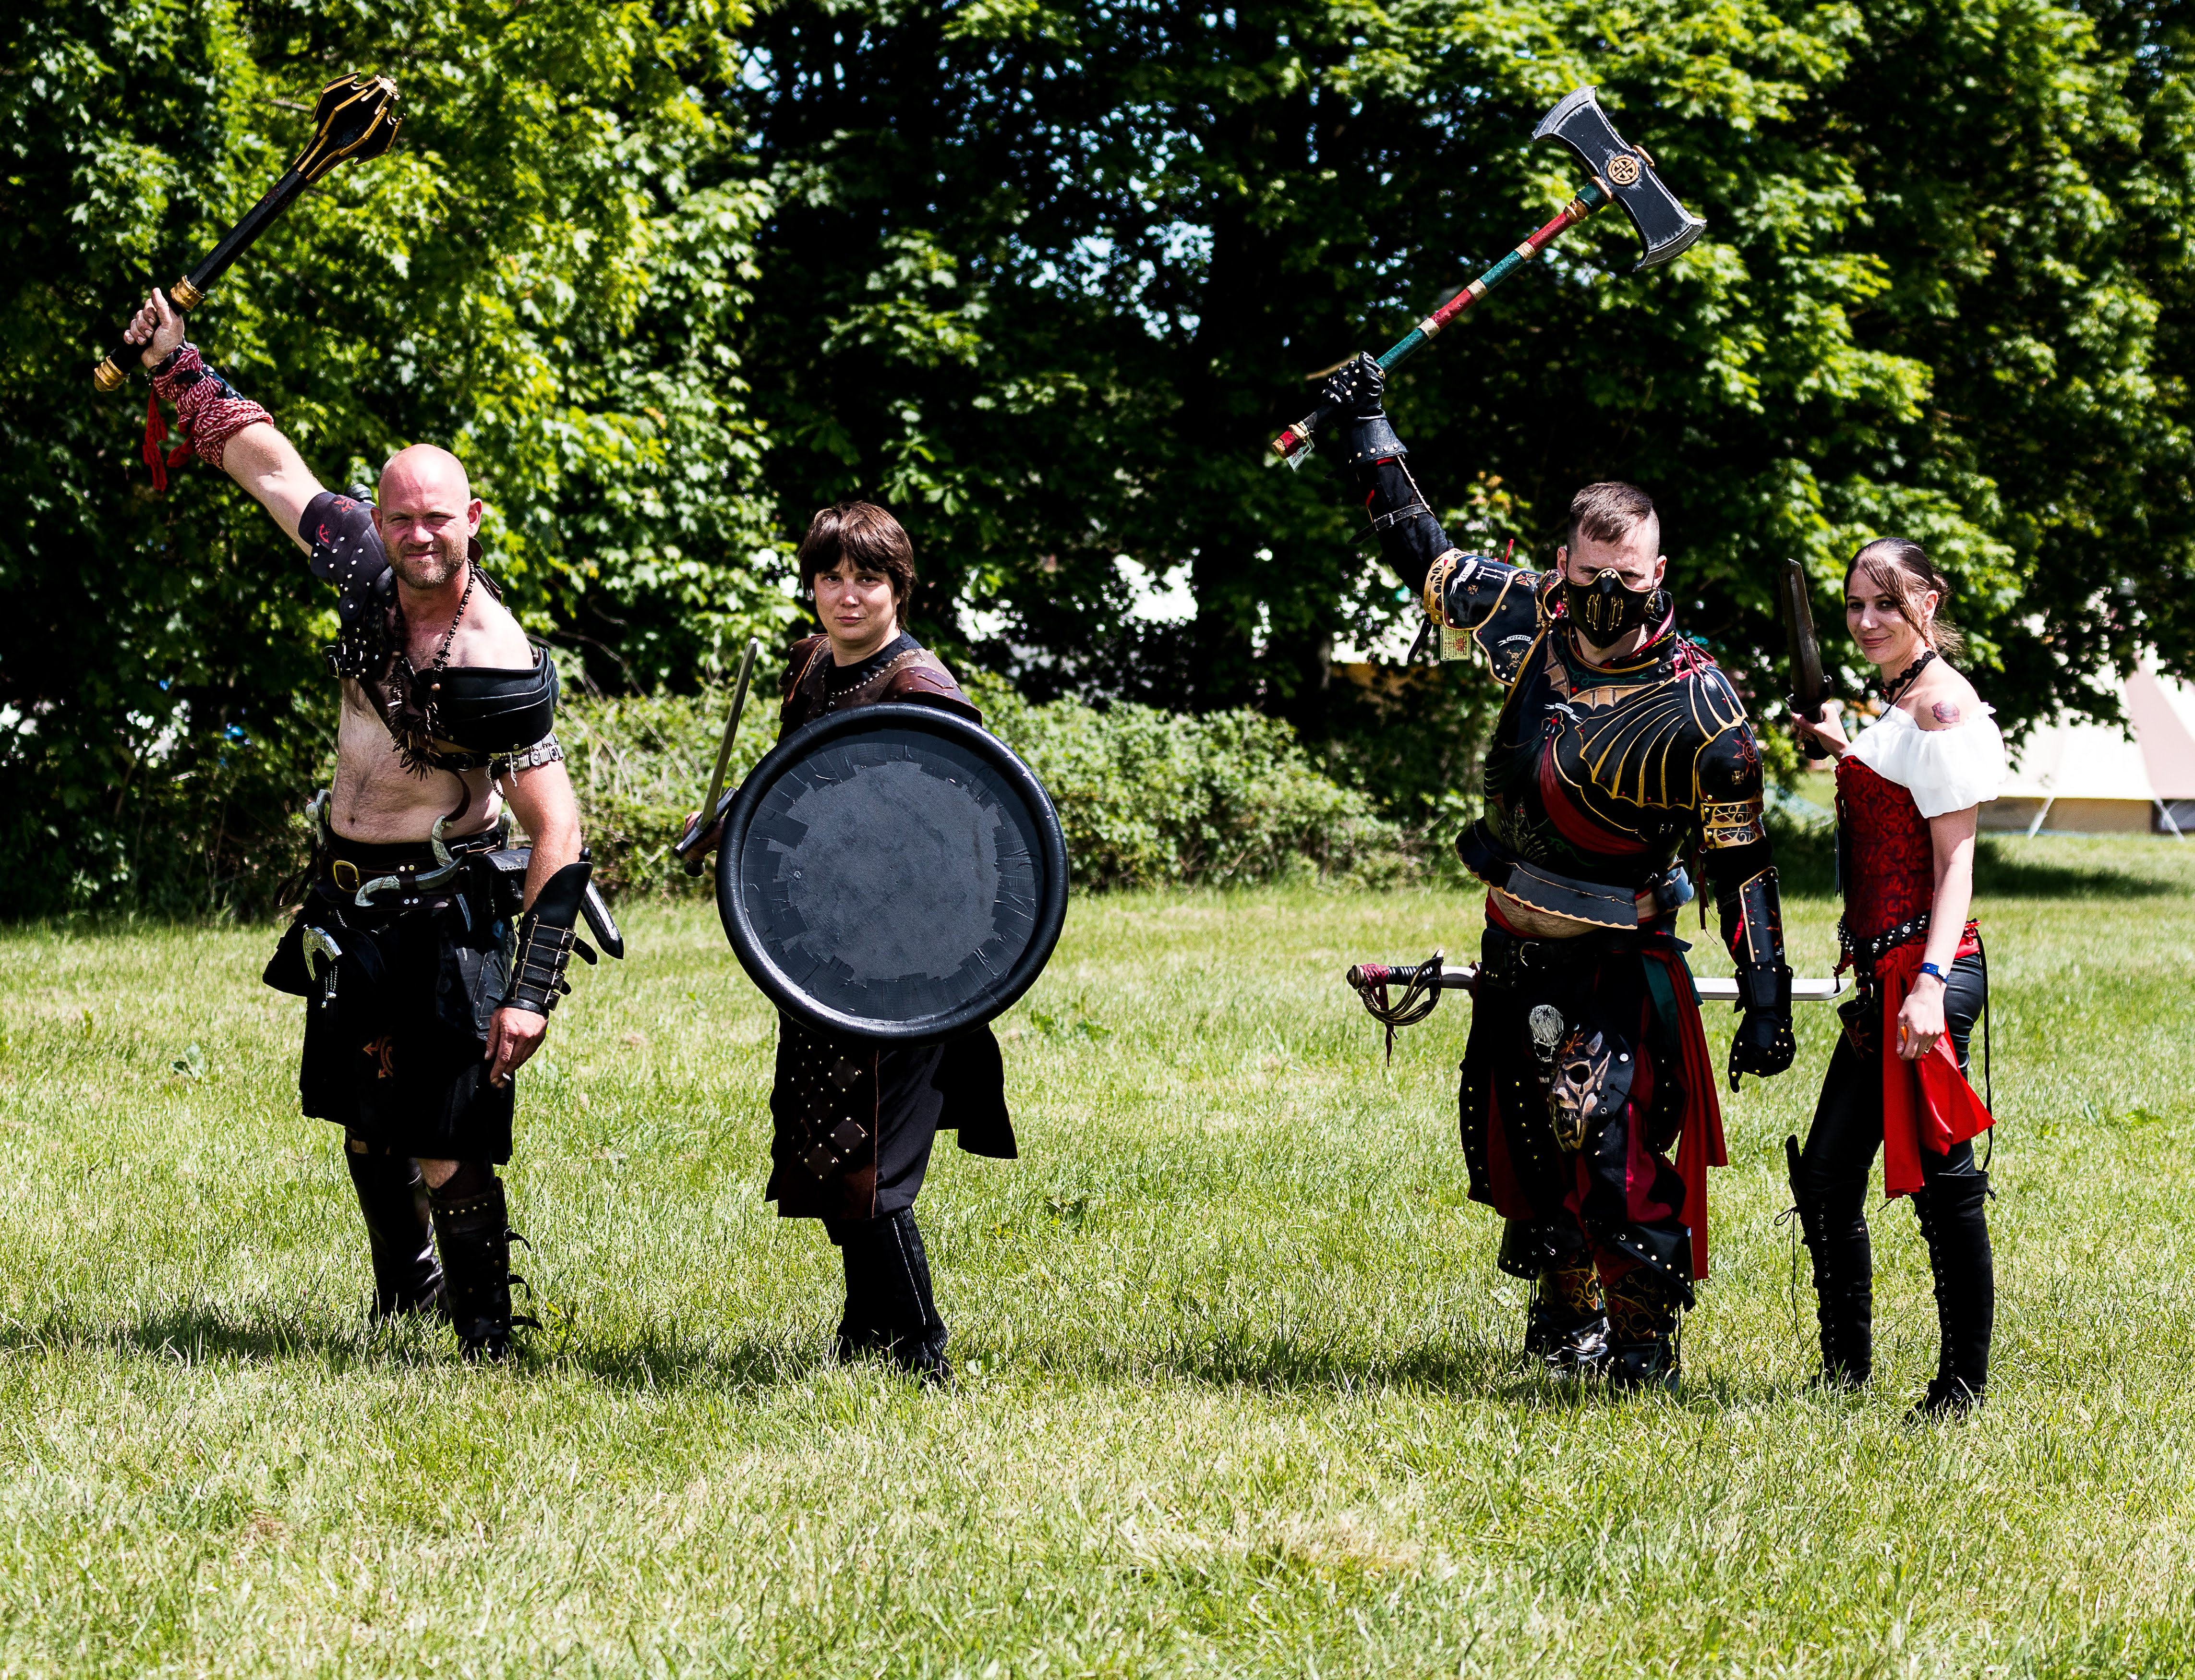 Lorien Trust players at a UK LARP event